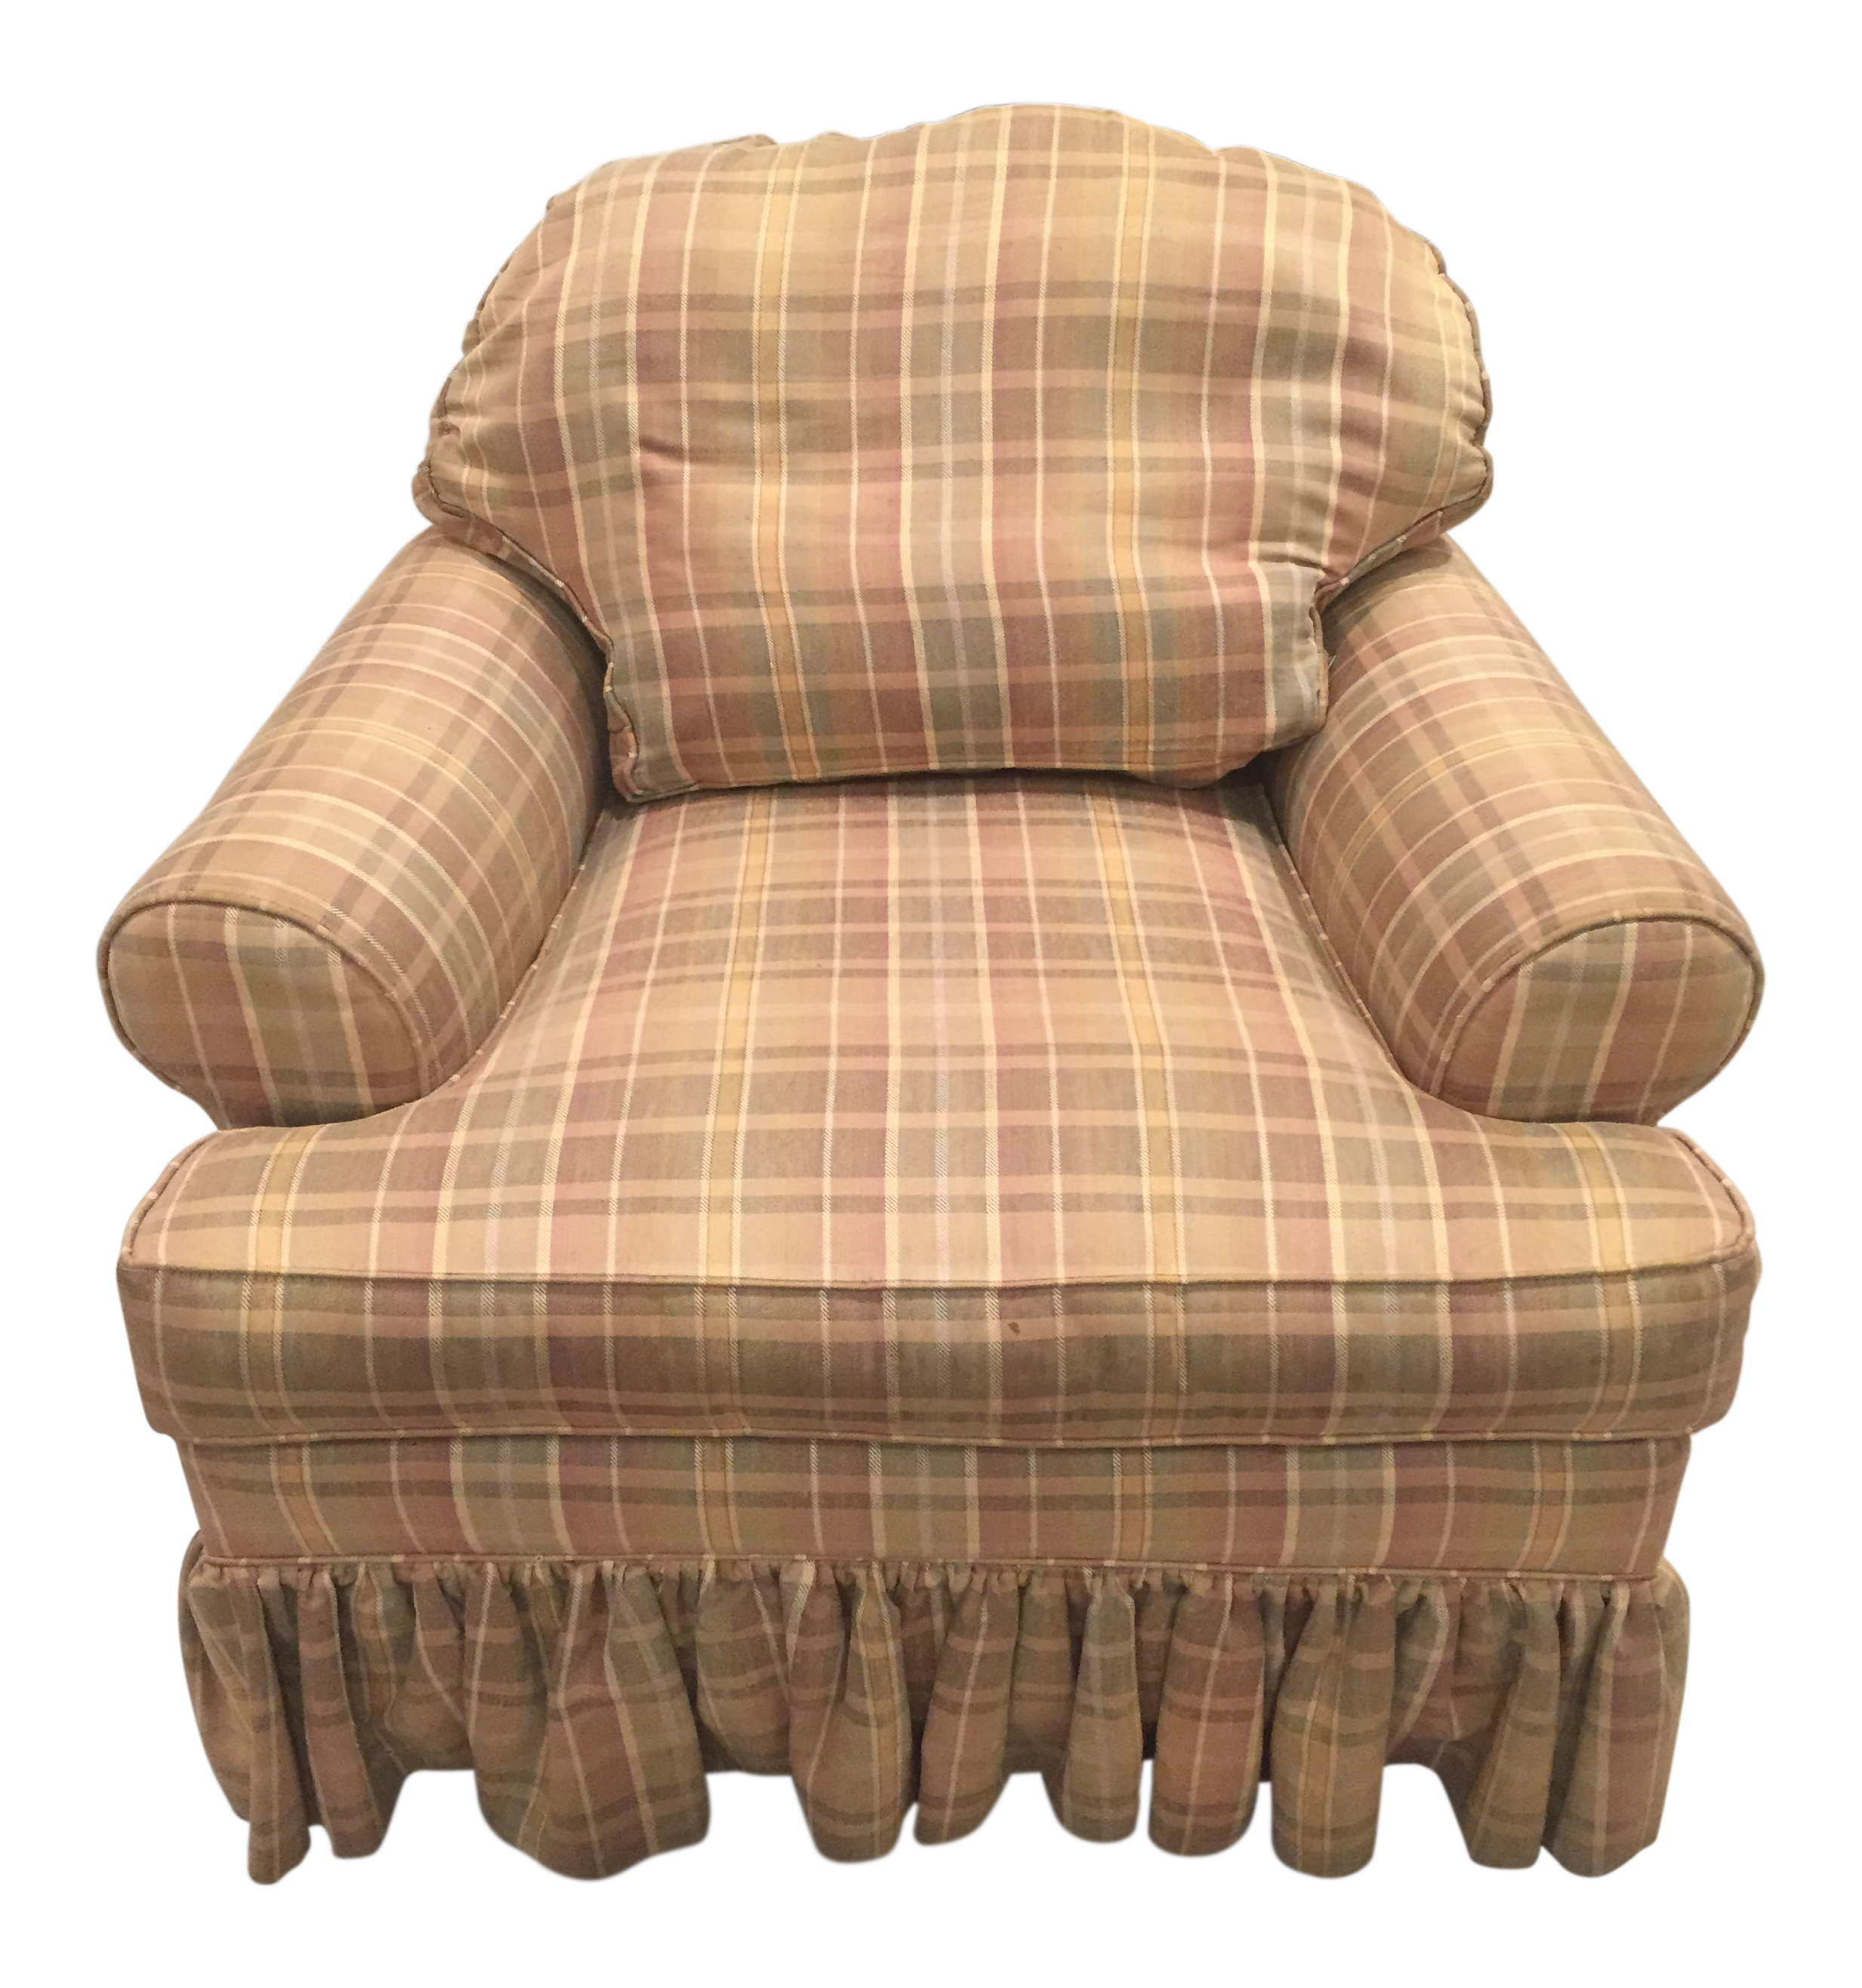 Country Ethan Allen Skirted Club Chair